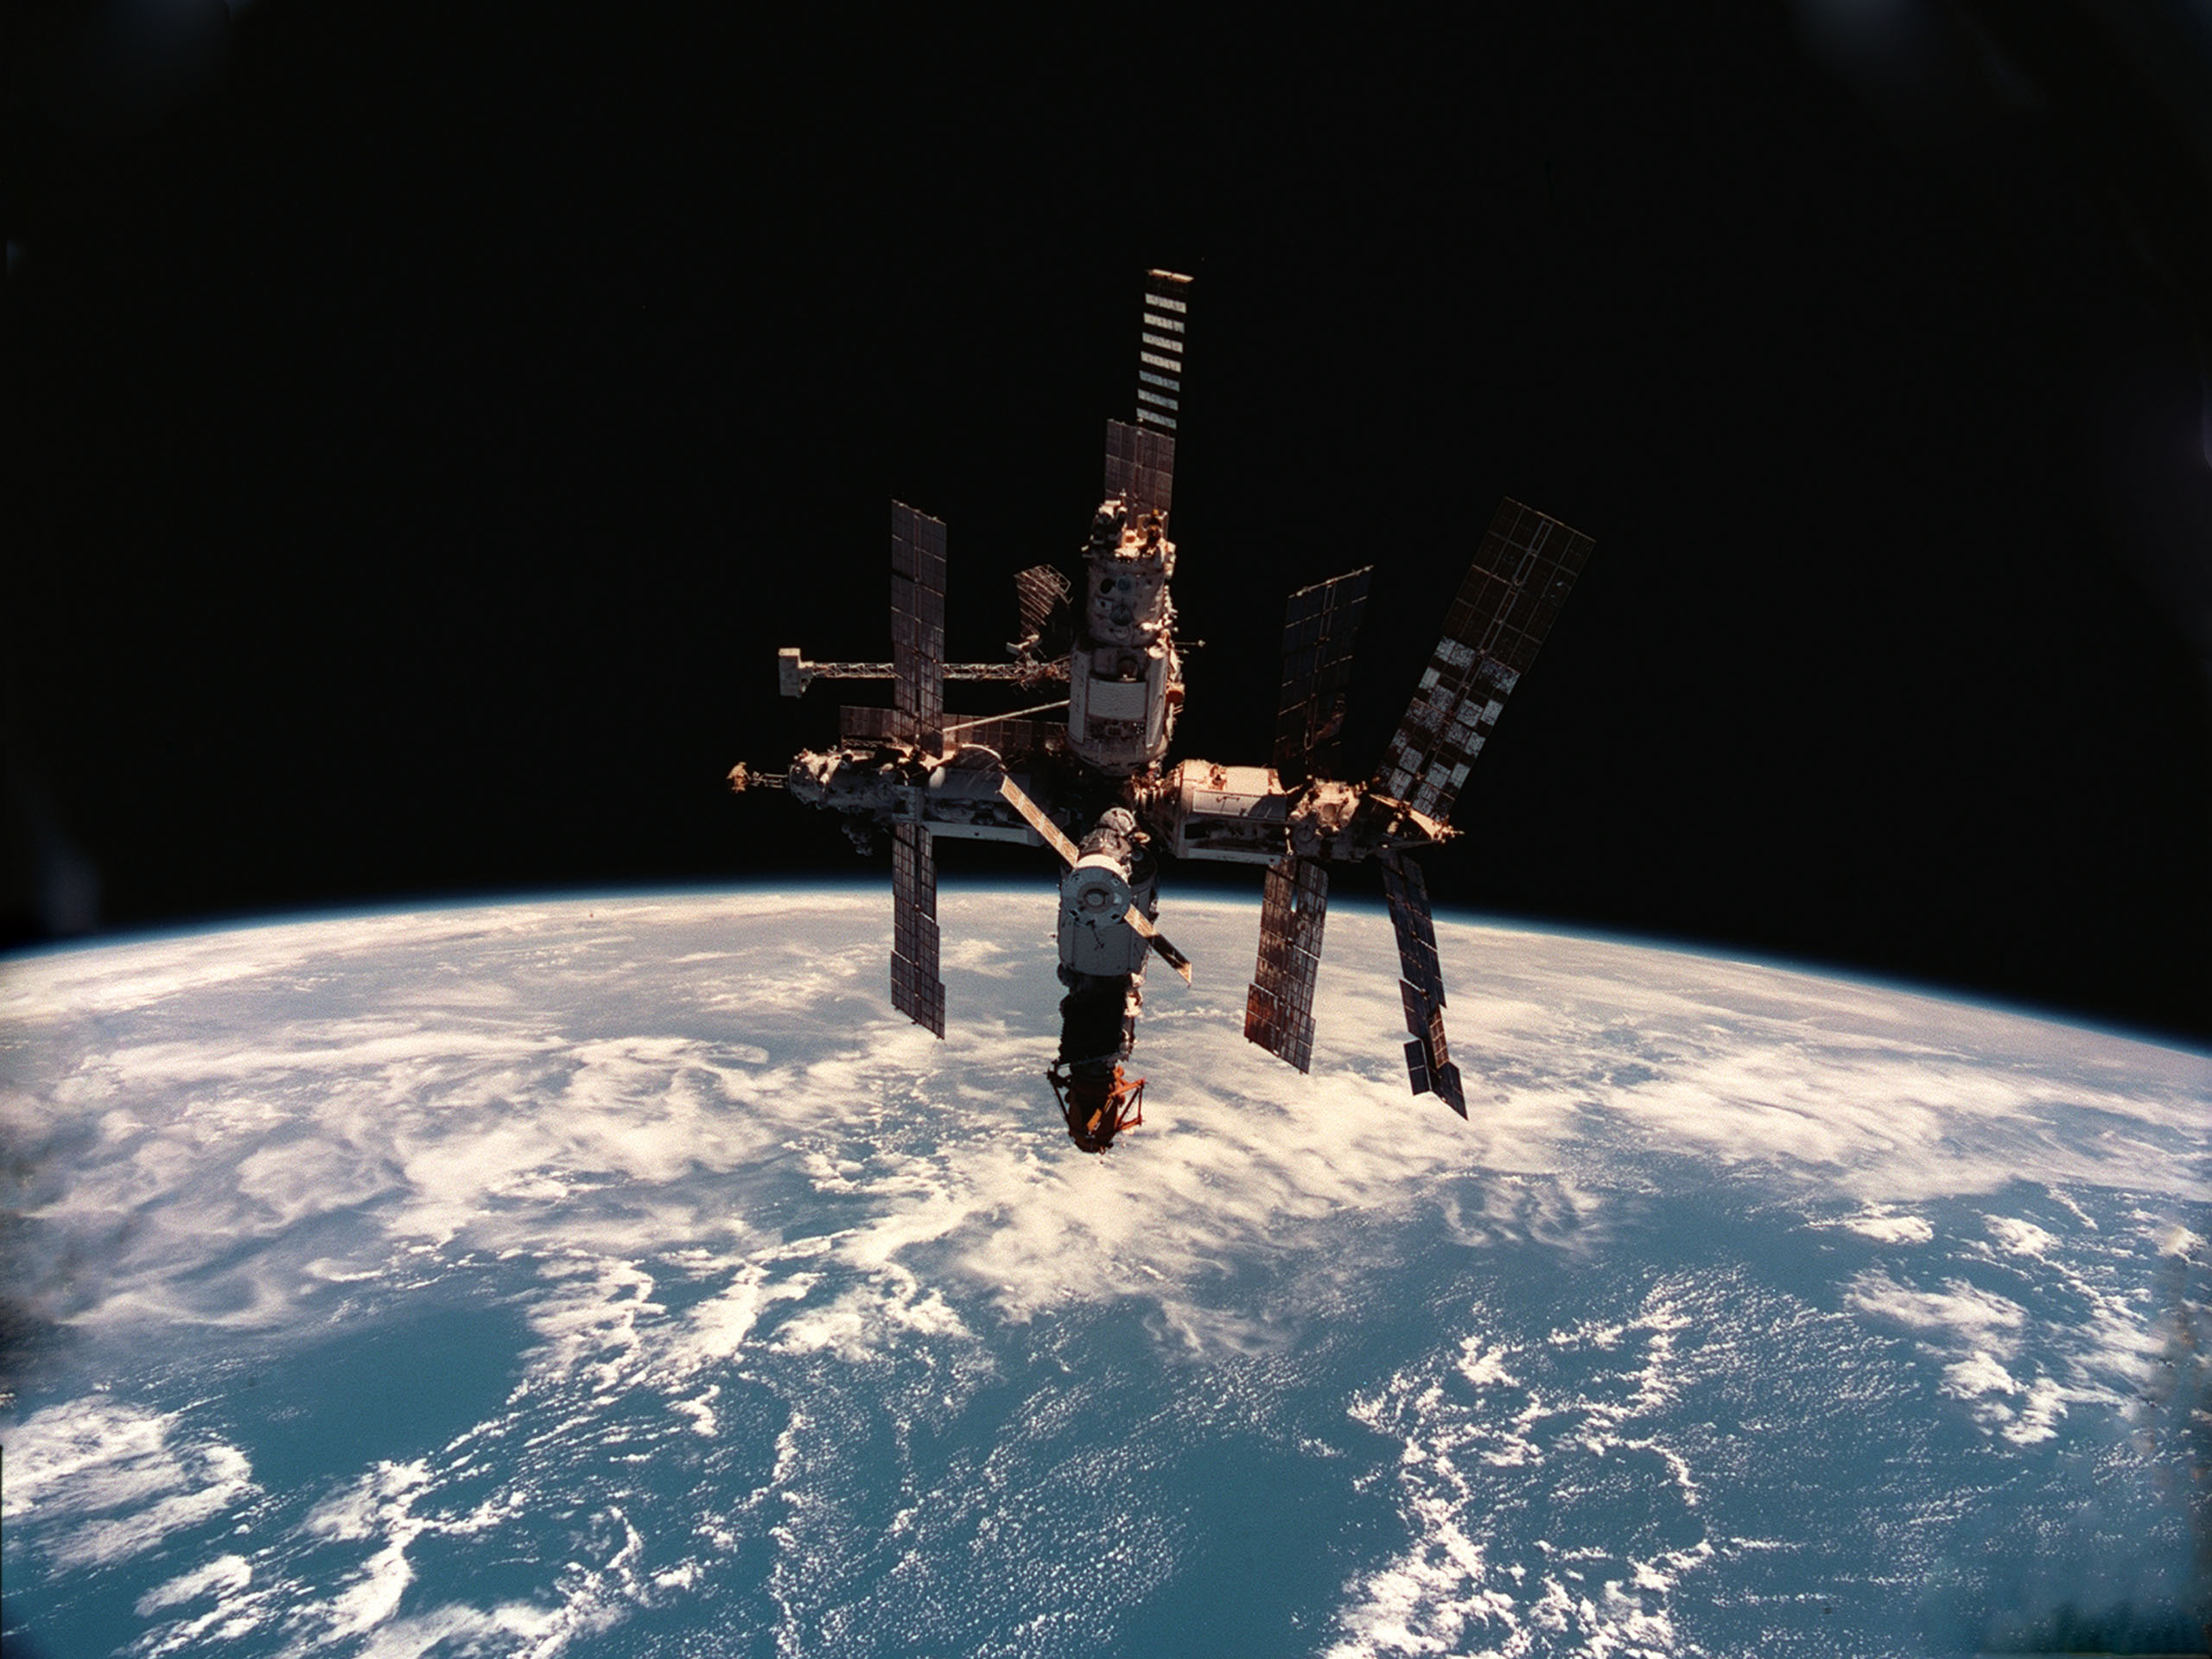 This Week in Space! – February 24, 1997 – Fire Onboard the Mir Space Station